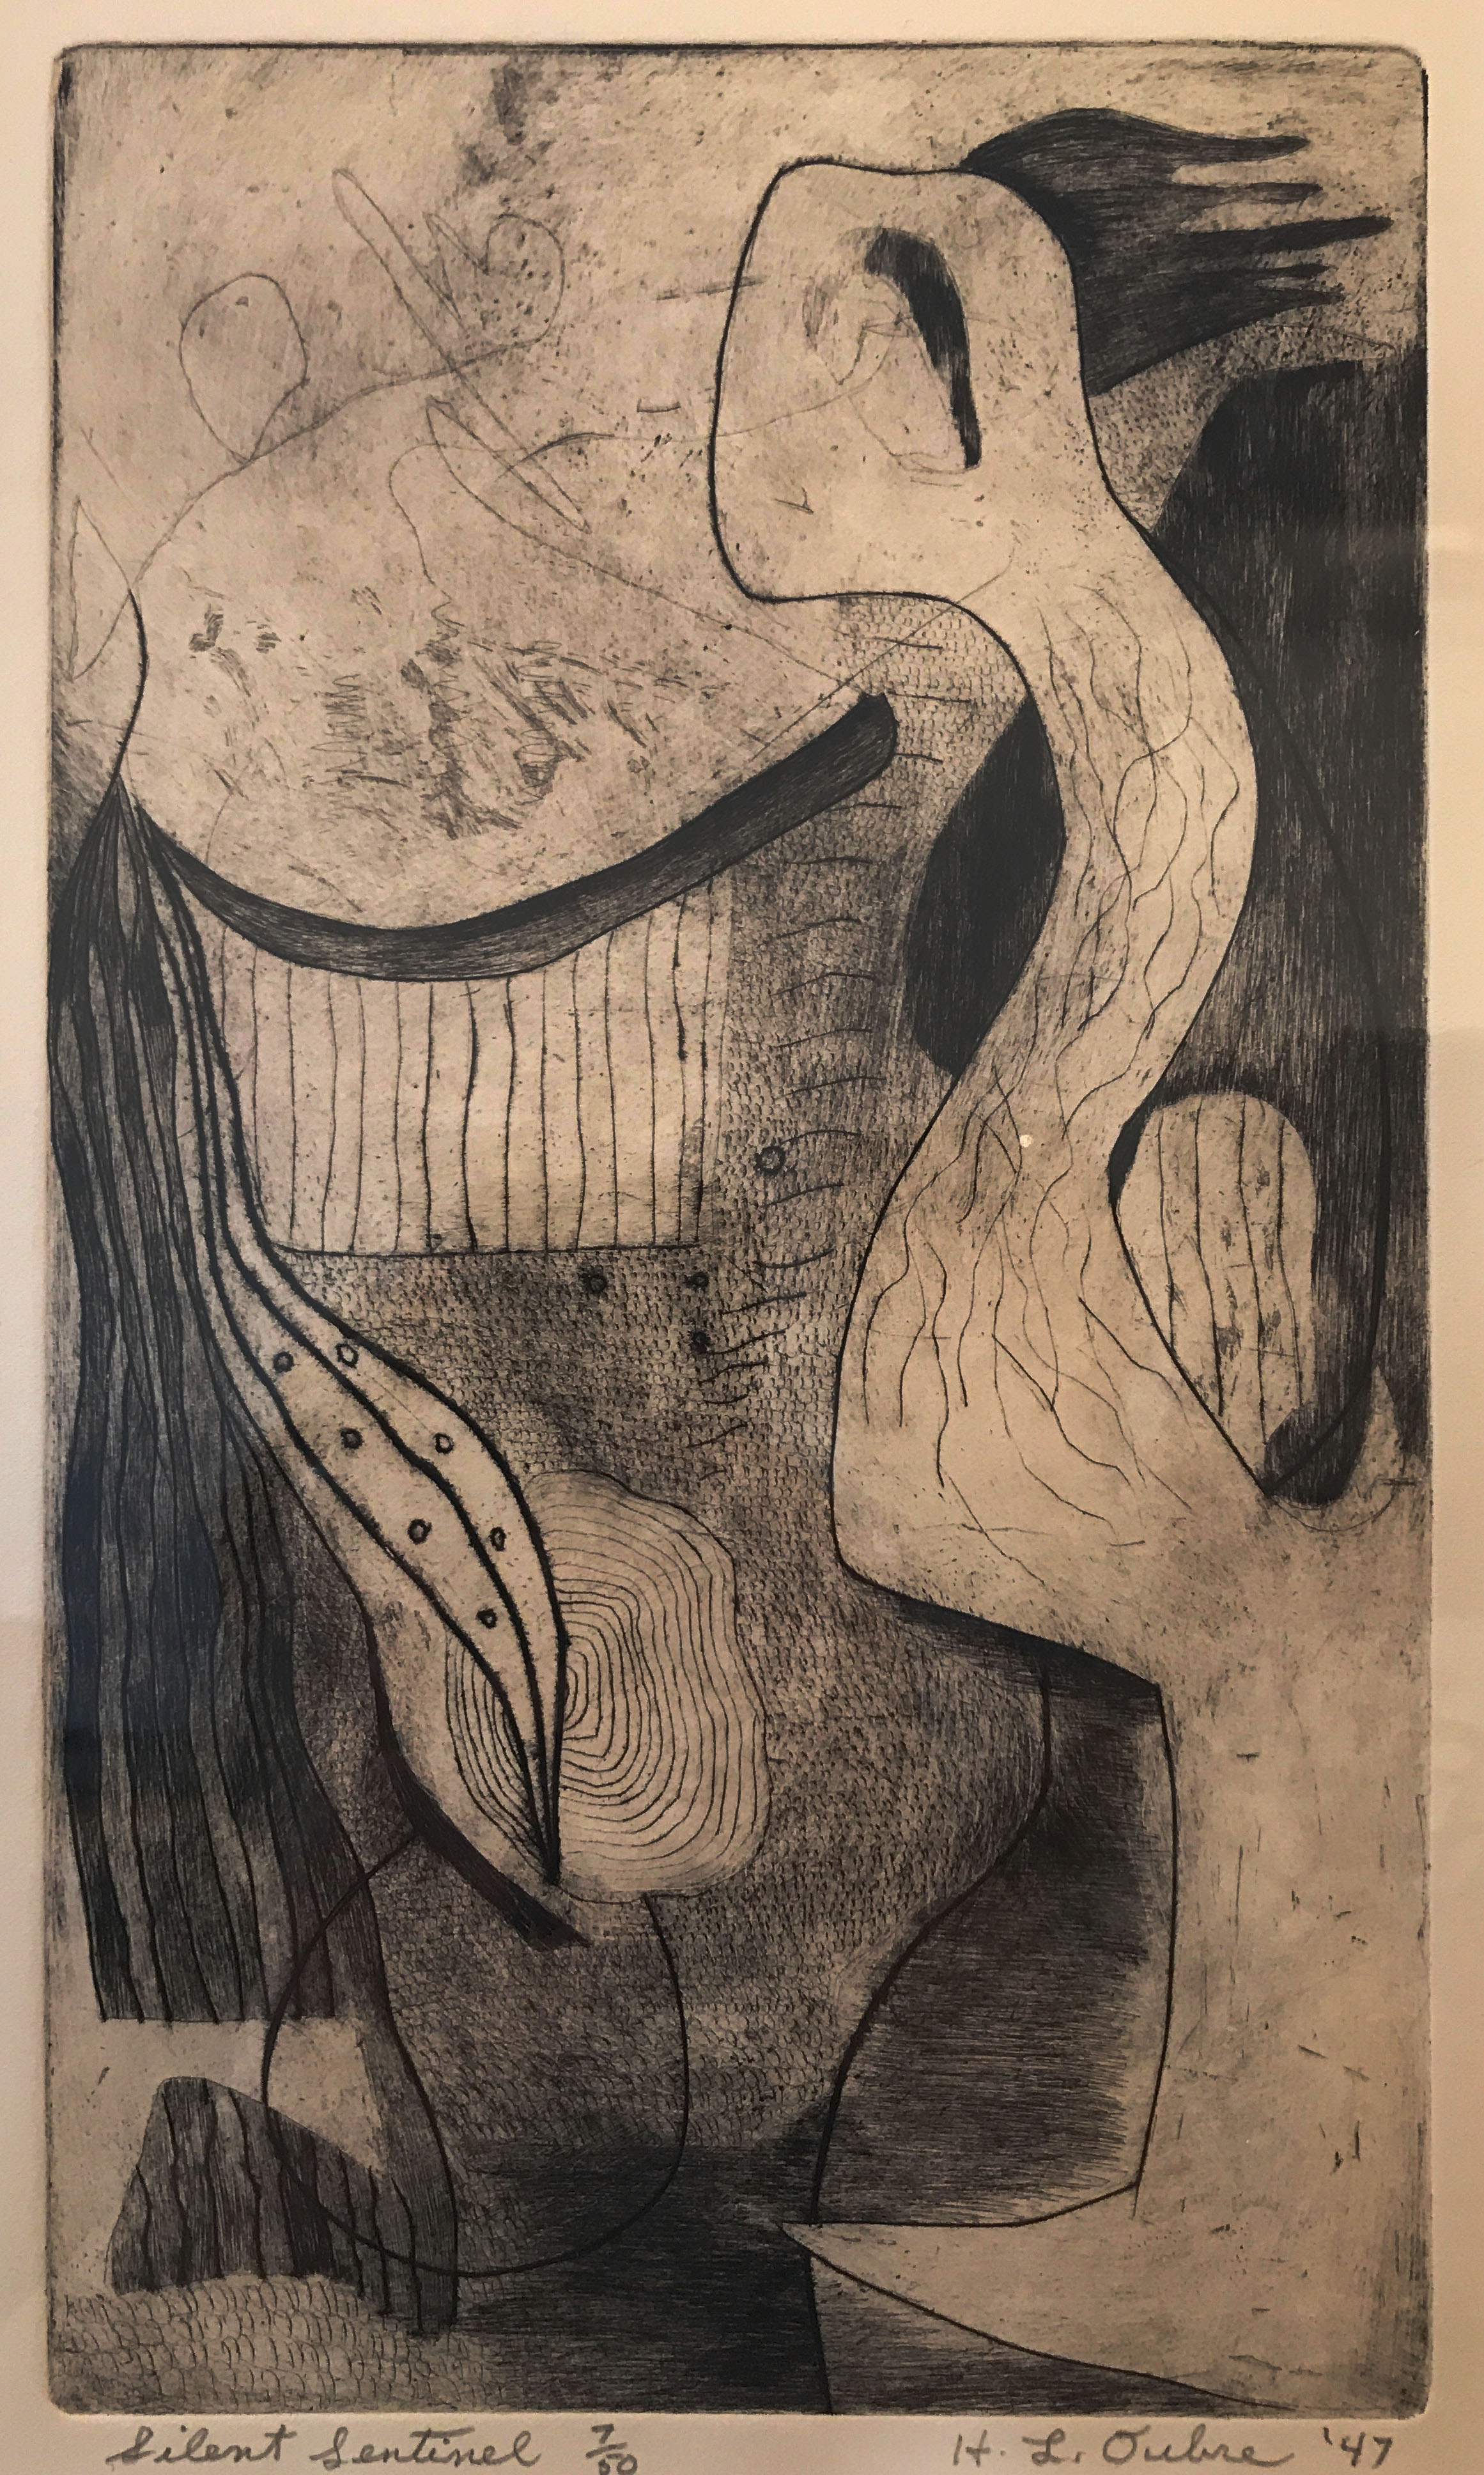 Hayward Oubre. (1916-2006)   Silent Sentinel , Etching, 18x12 inches, 1947